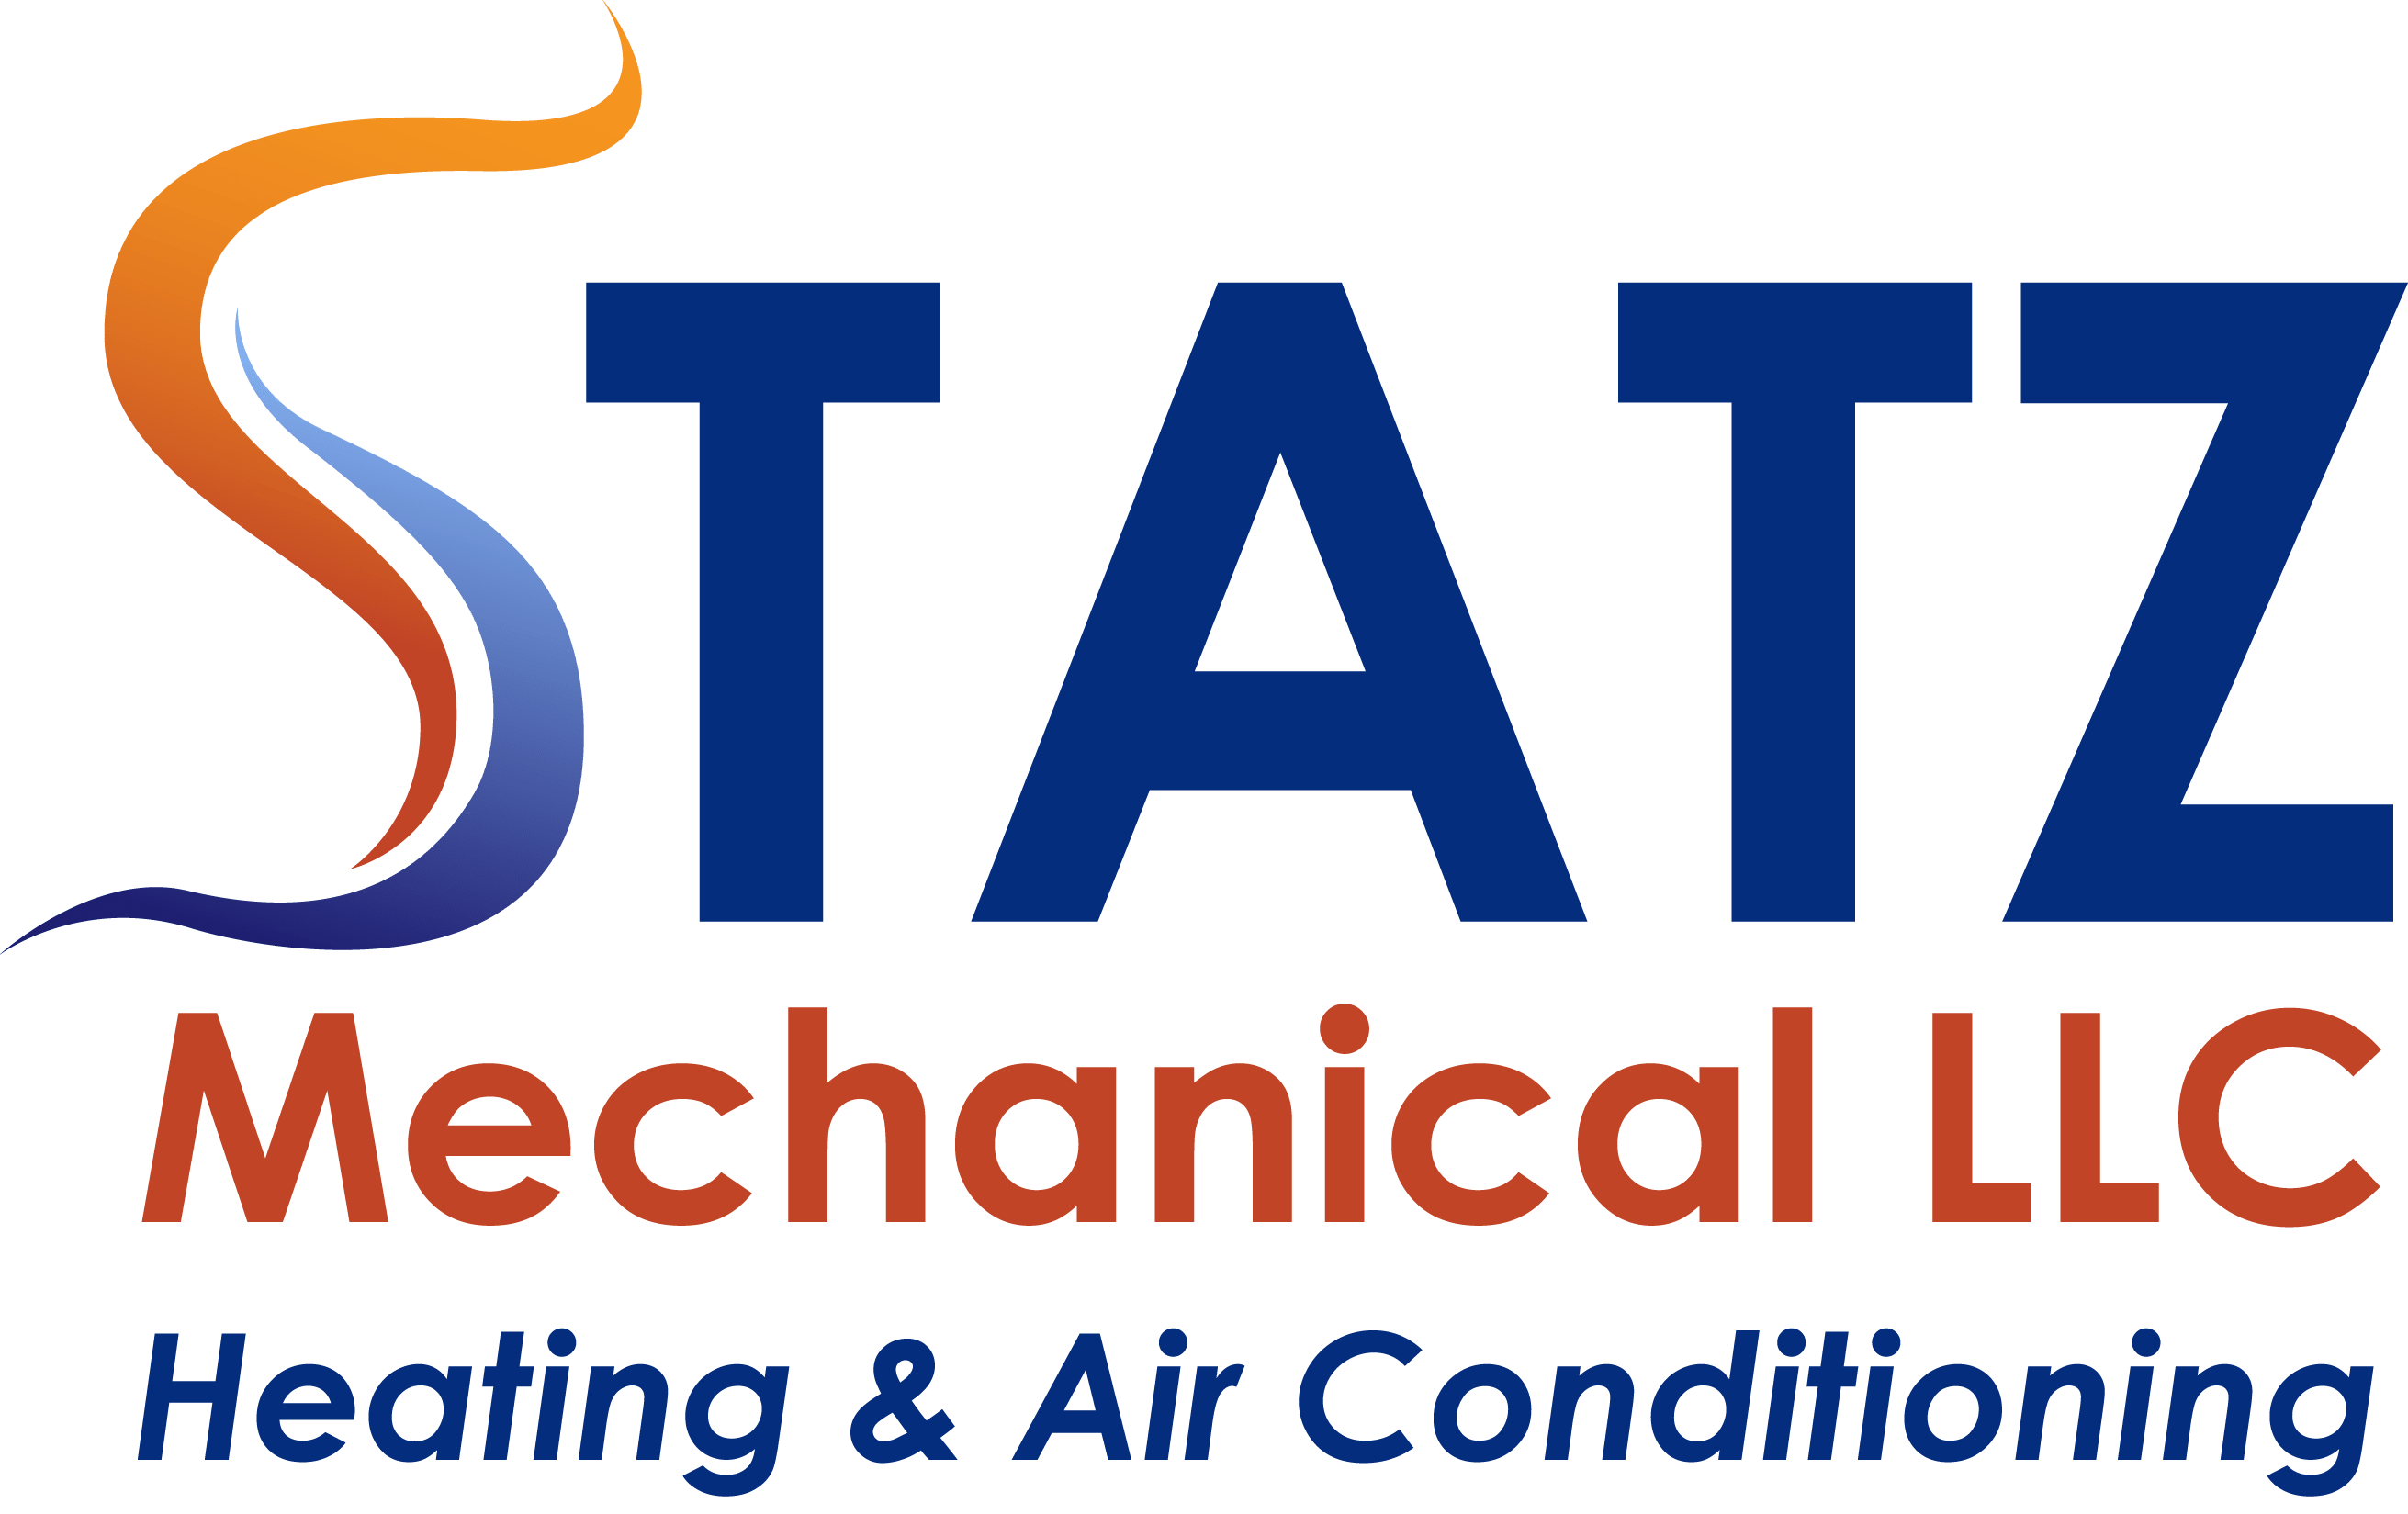 Get your Amana Furnace units service done in Baraboo WI by Statz Mechanical LLC